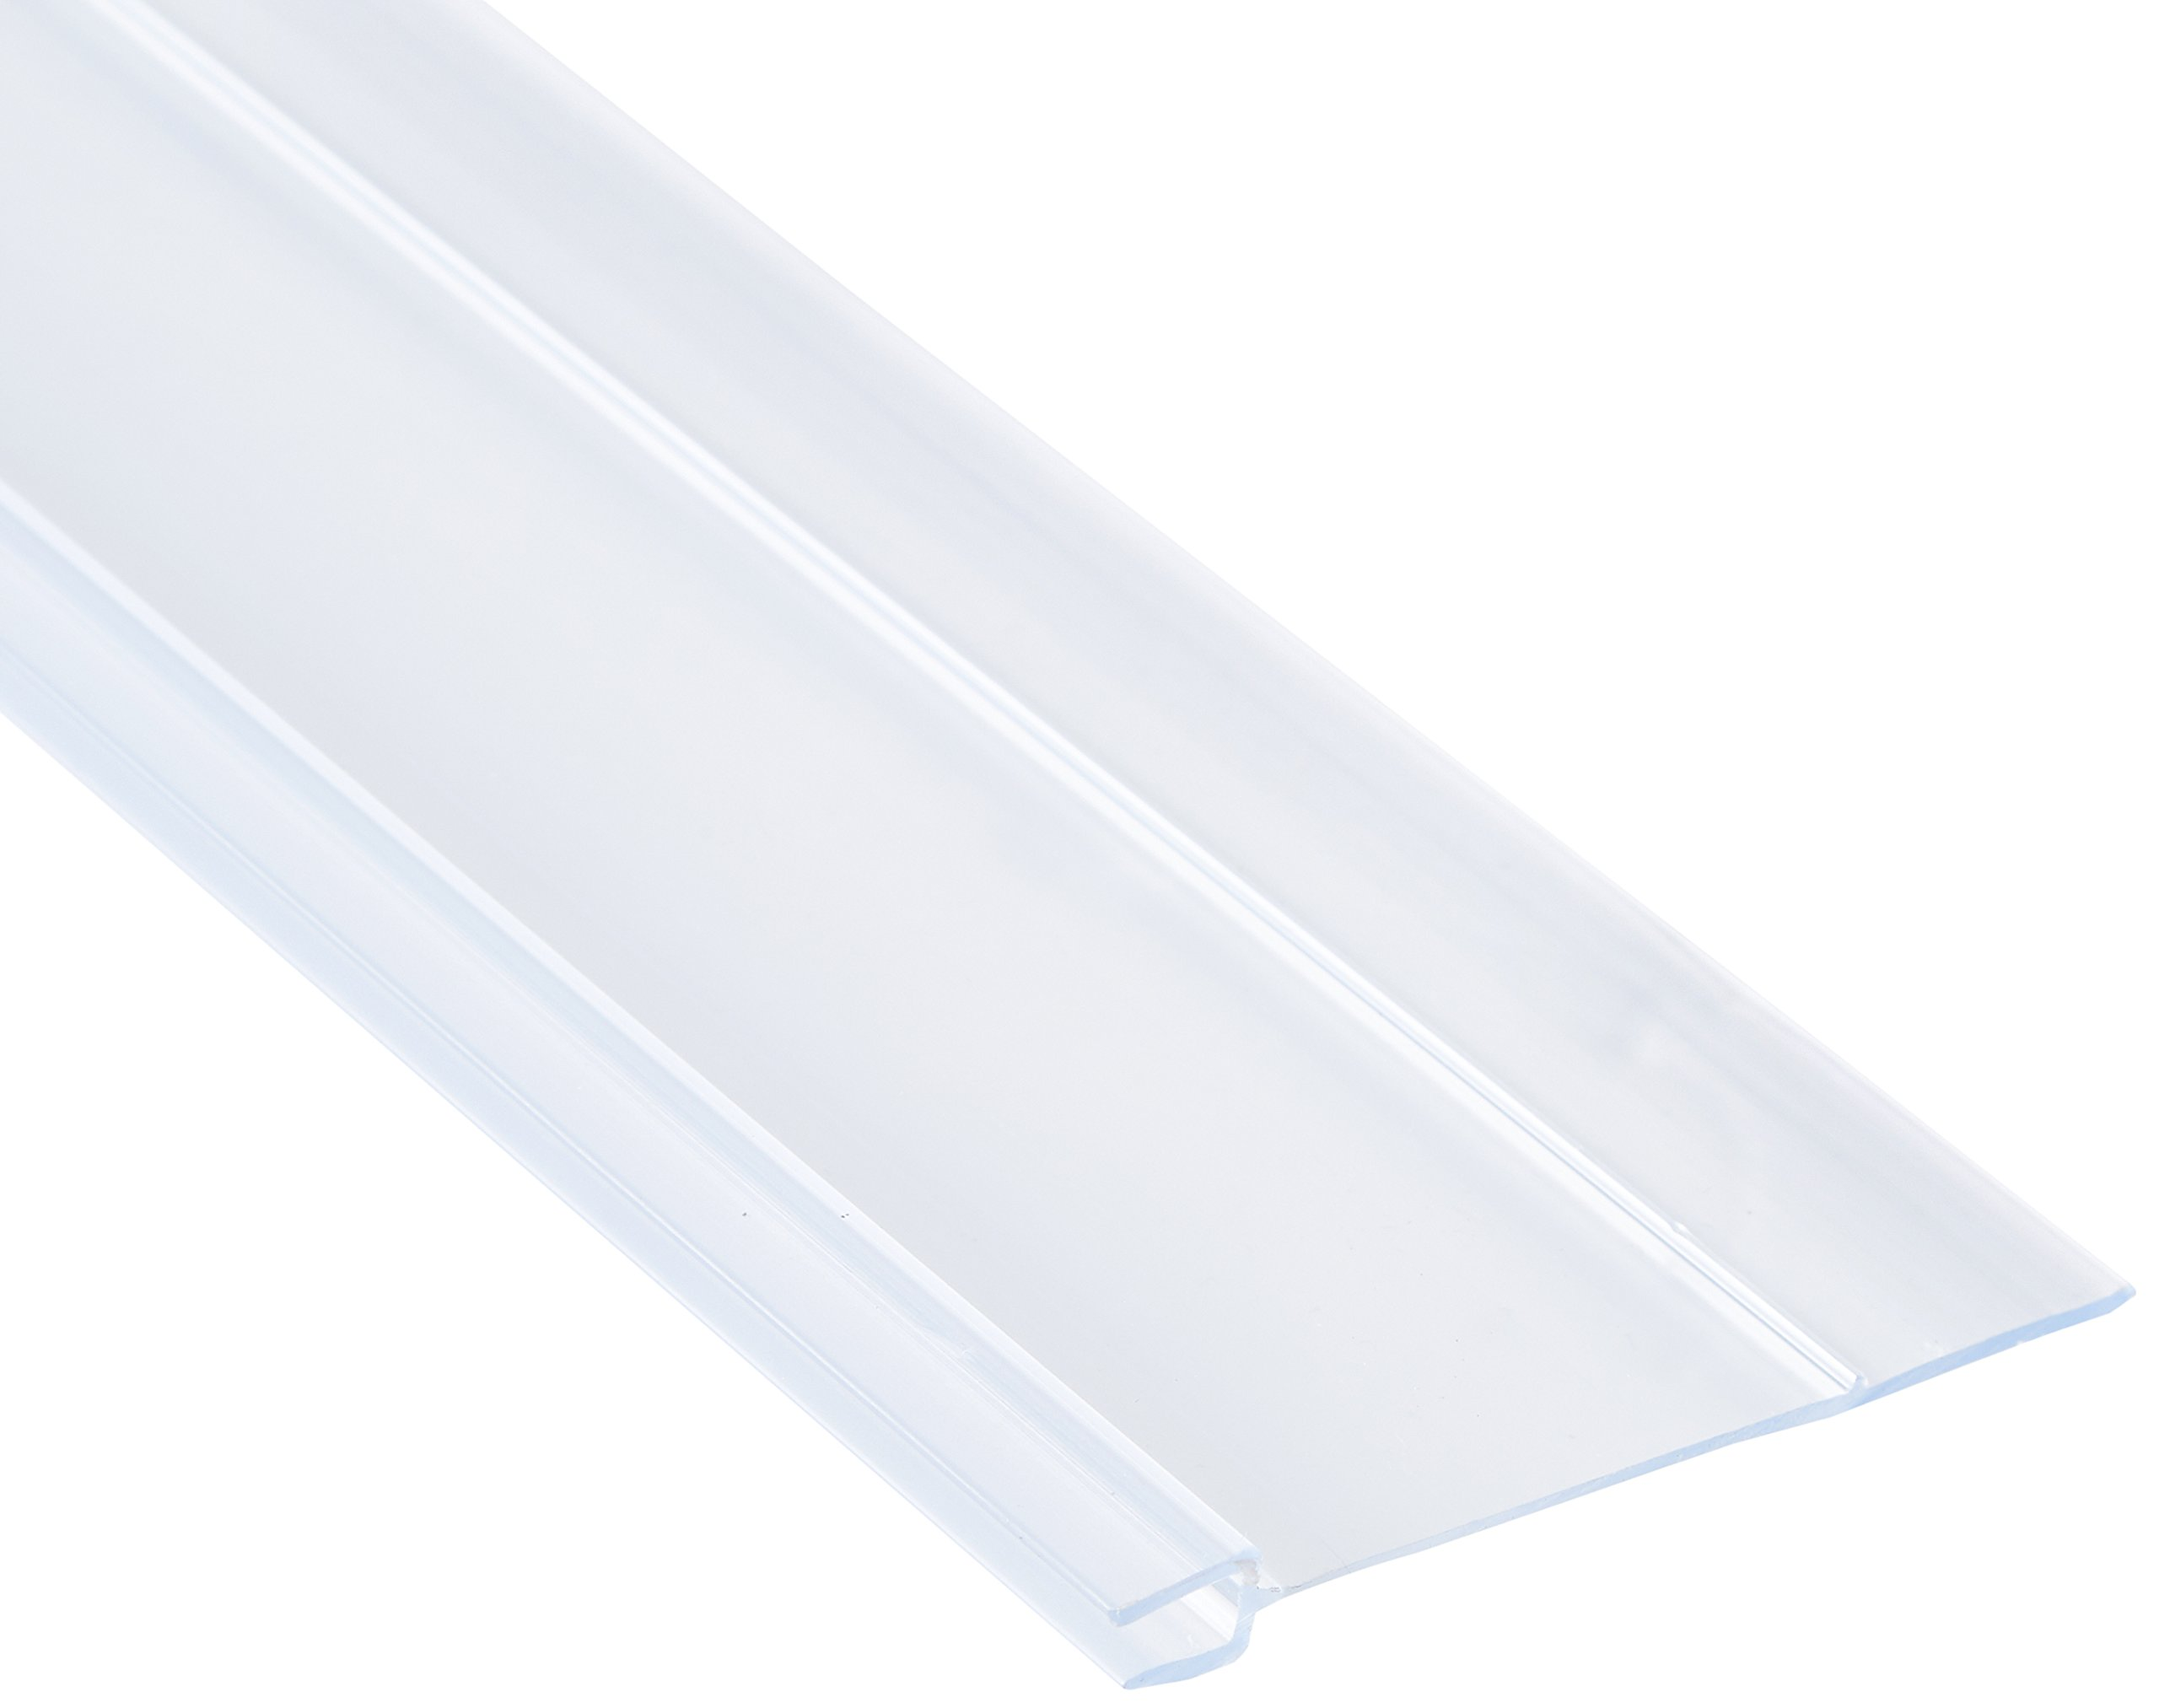 Perfecto Manufacturing APFBAG028 Marineland Plastic Hood Back Strip Lighting for Aquarium, Large, Clear